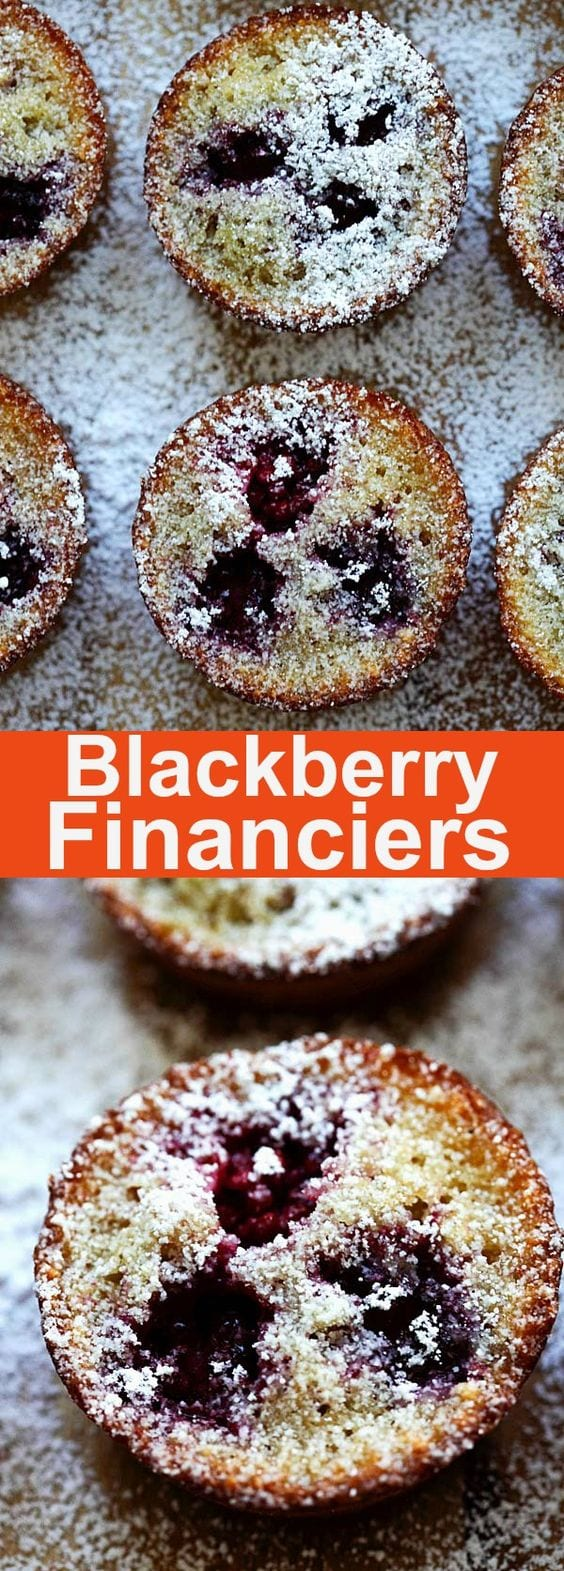 Blackberry Financiers - buttery, moist and rich French cake with blackberries. Homemade financiers are great with tea or coffee. So good | rasamalaysia.com